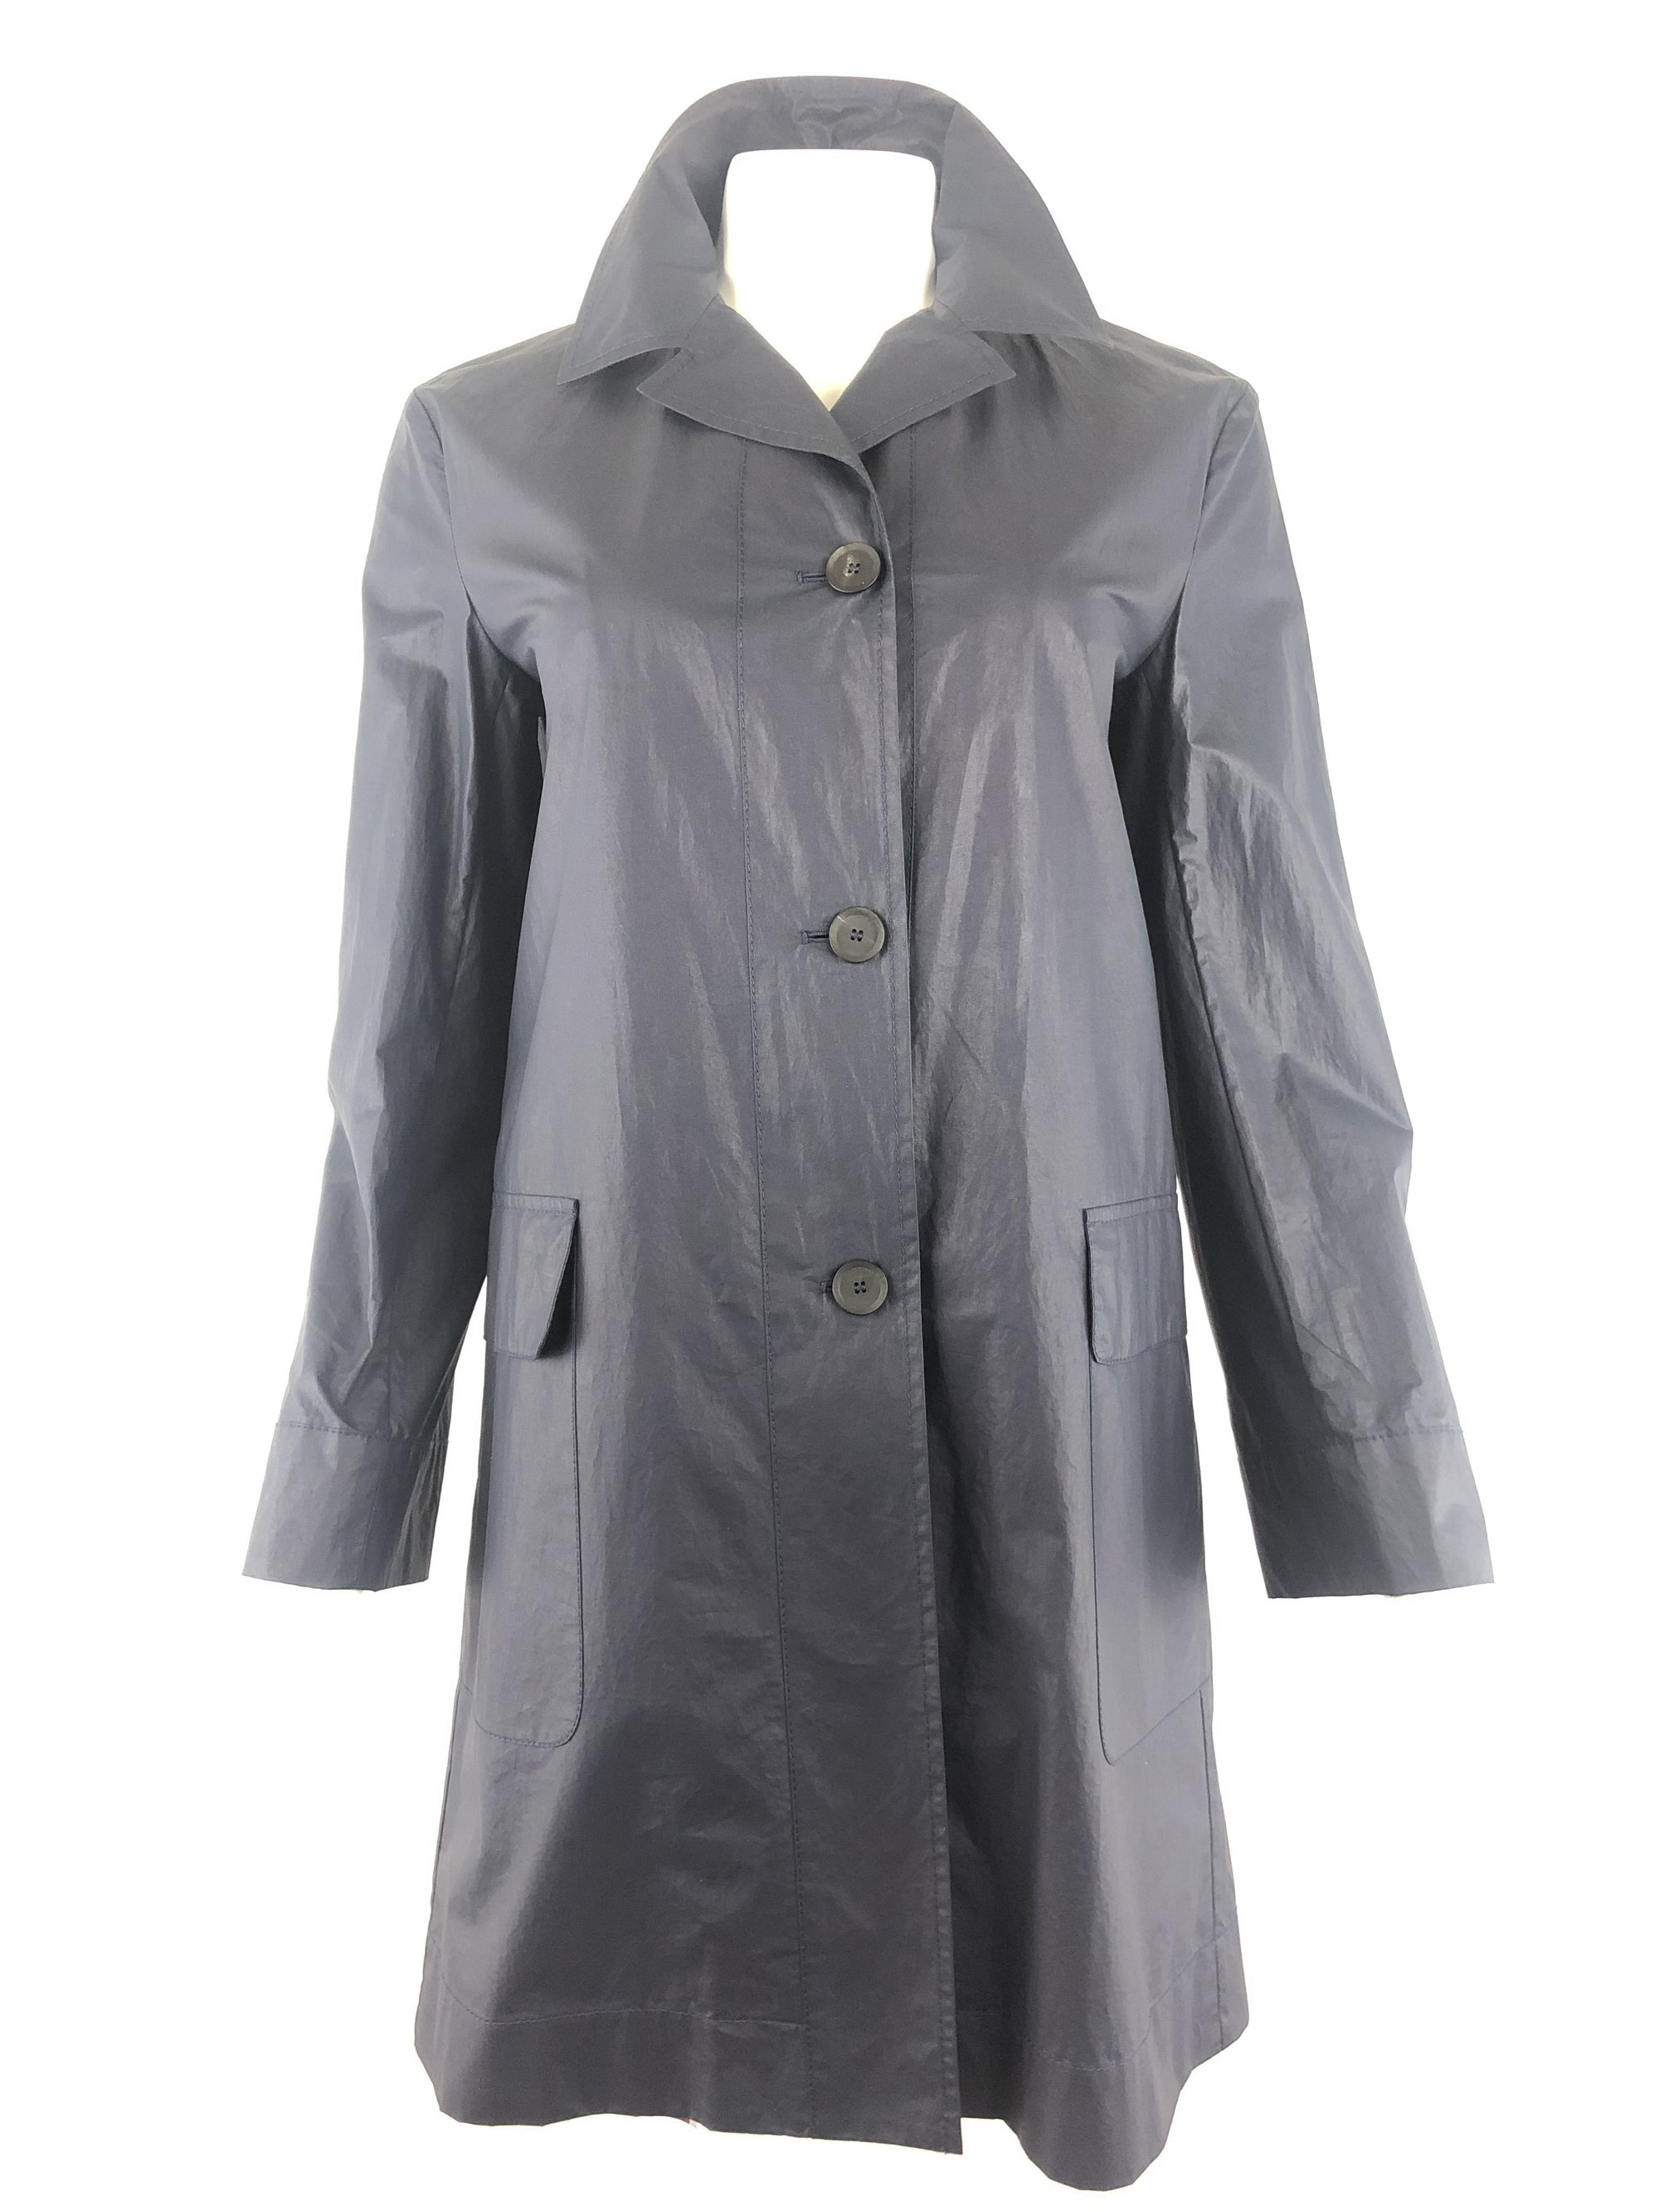 ANTONELLI FIRENZE 3/4 LENGTH RAINCOAT